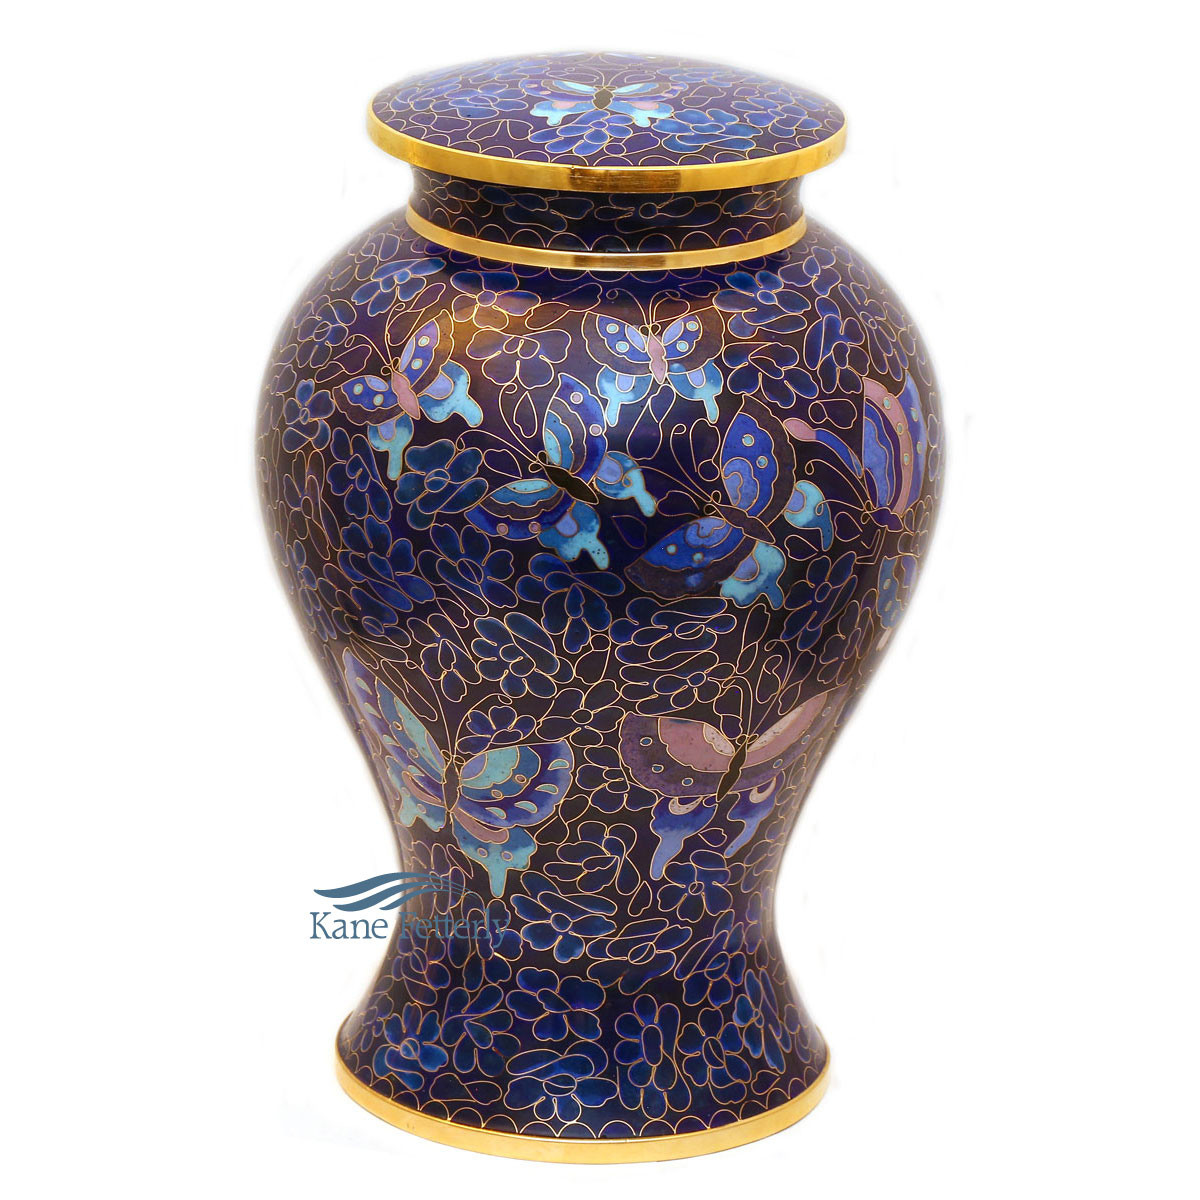 U8591 Cloisonn� urn with butterflies